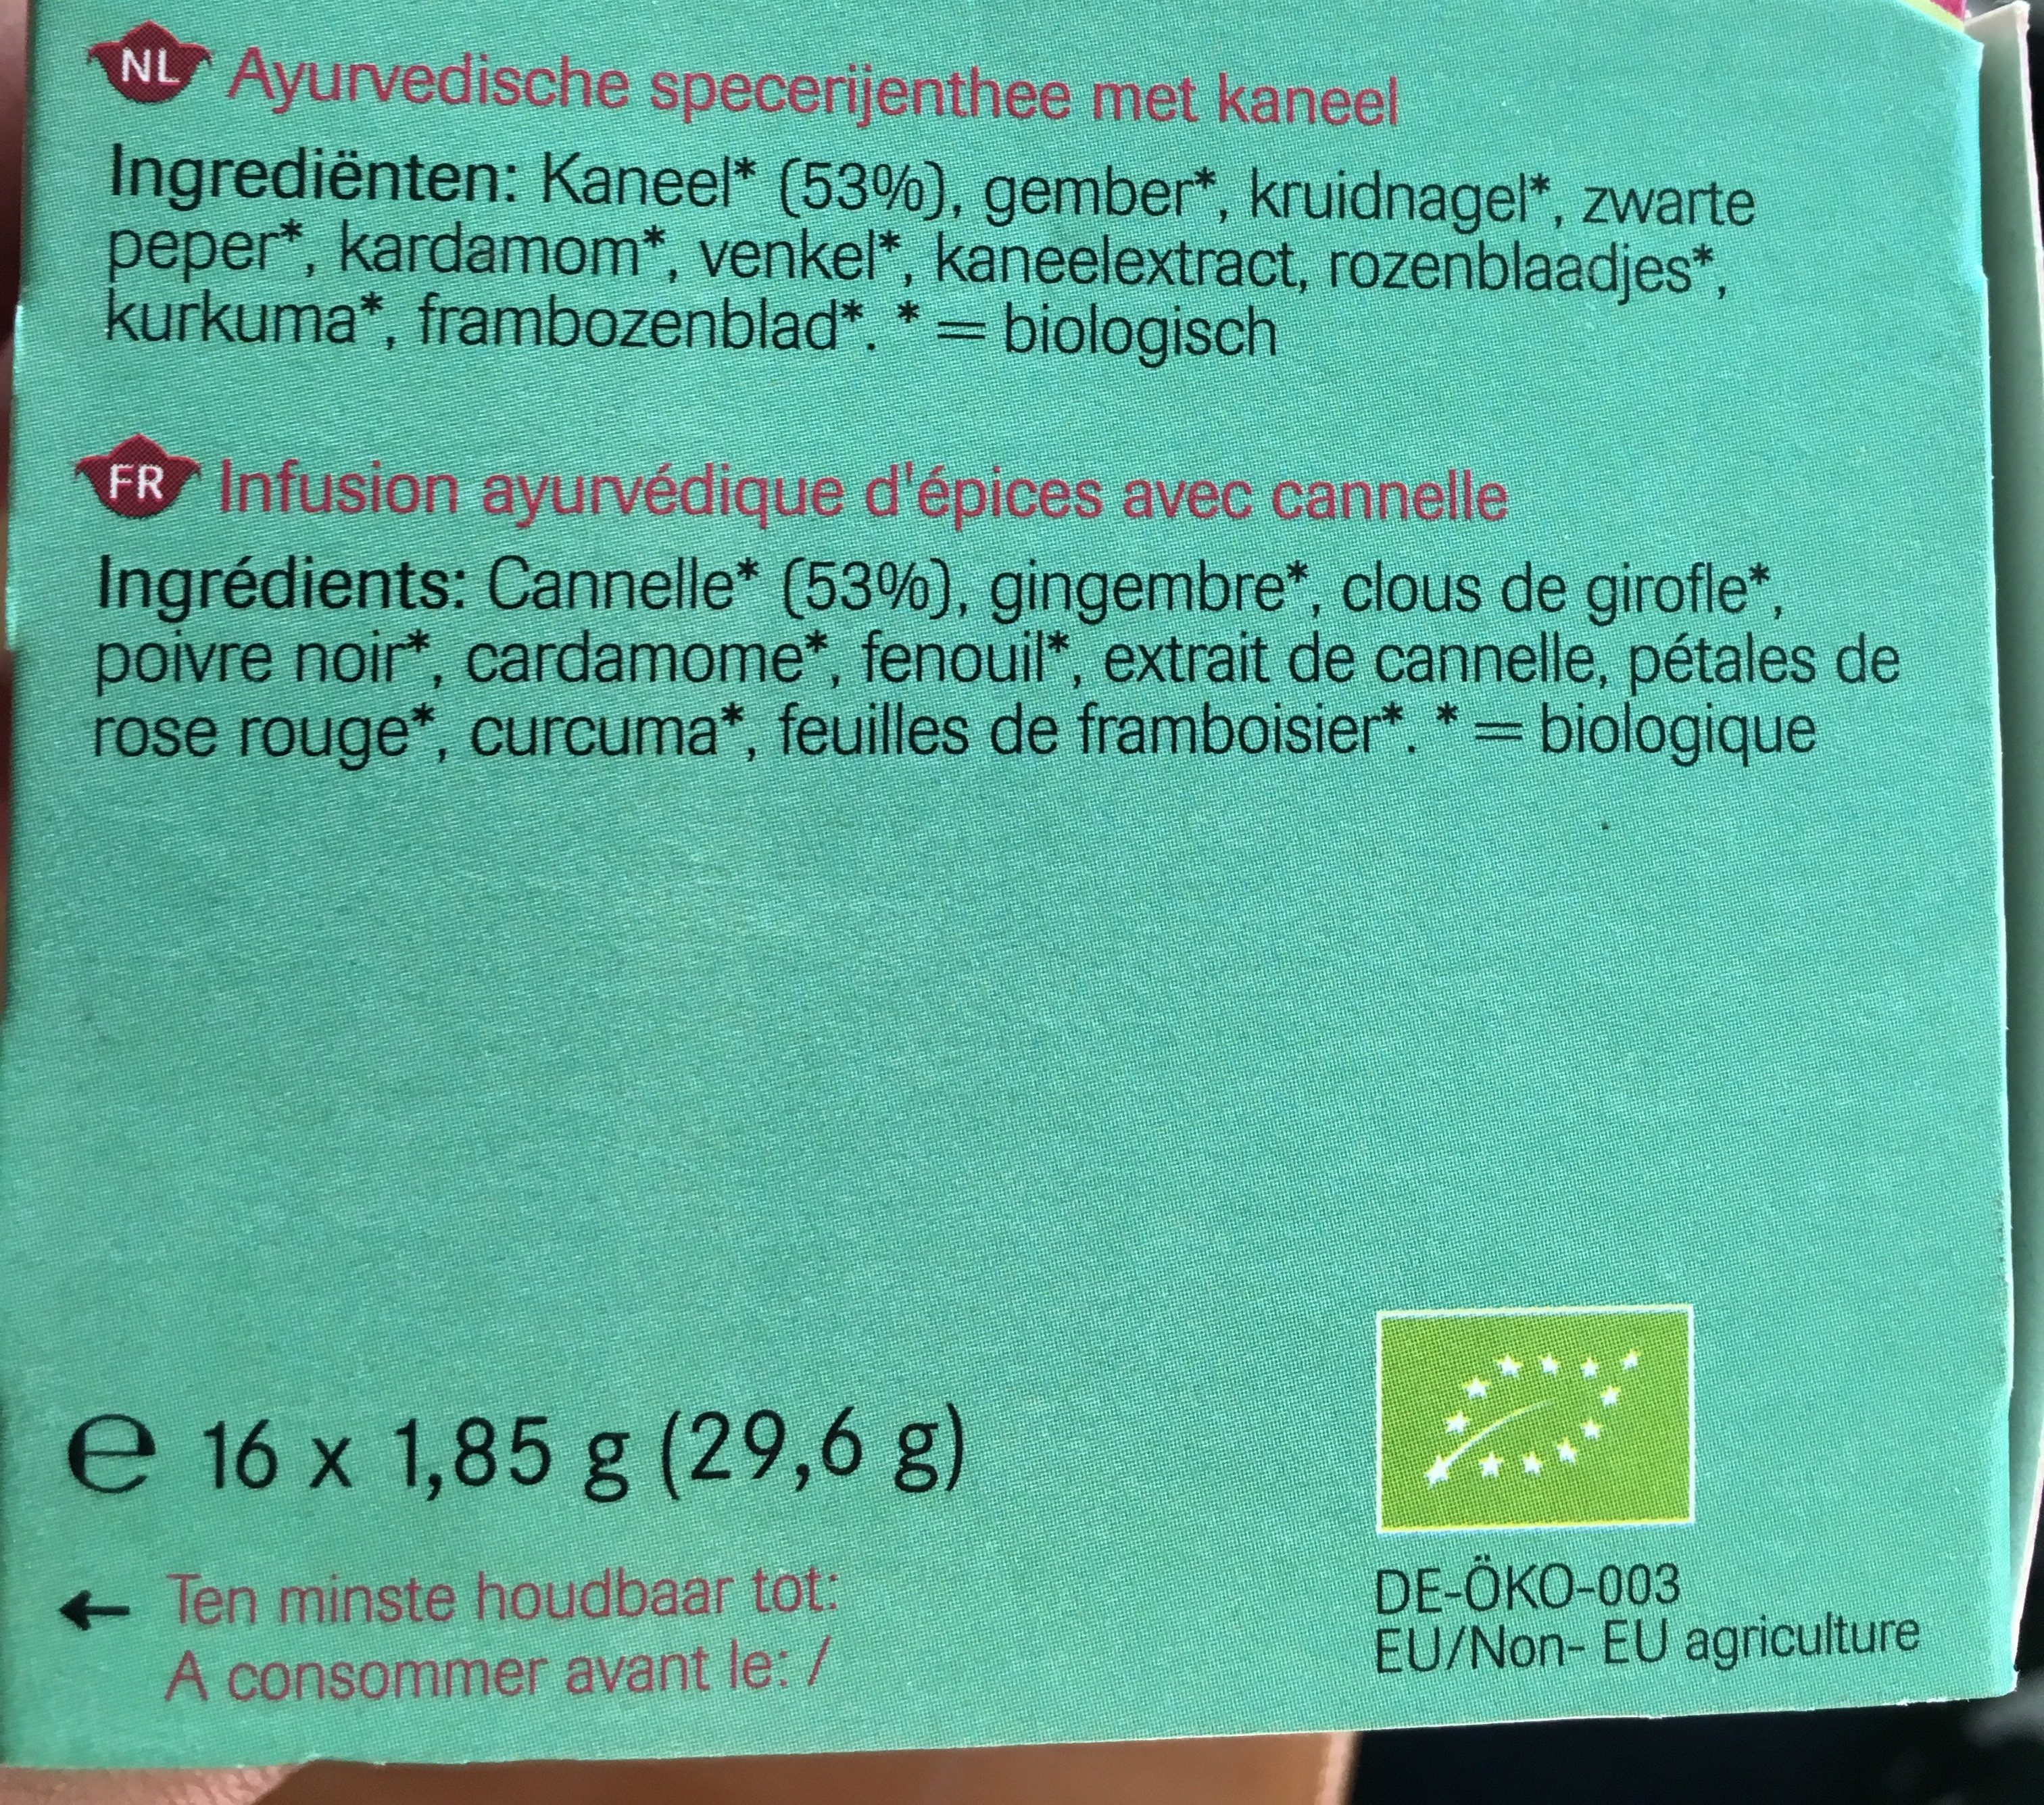 Harmony infusion aux herbs et epices - Ingredients - fr